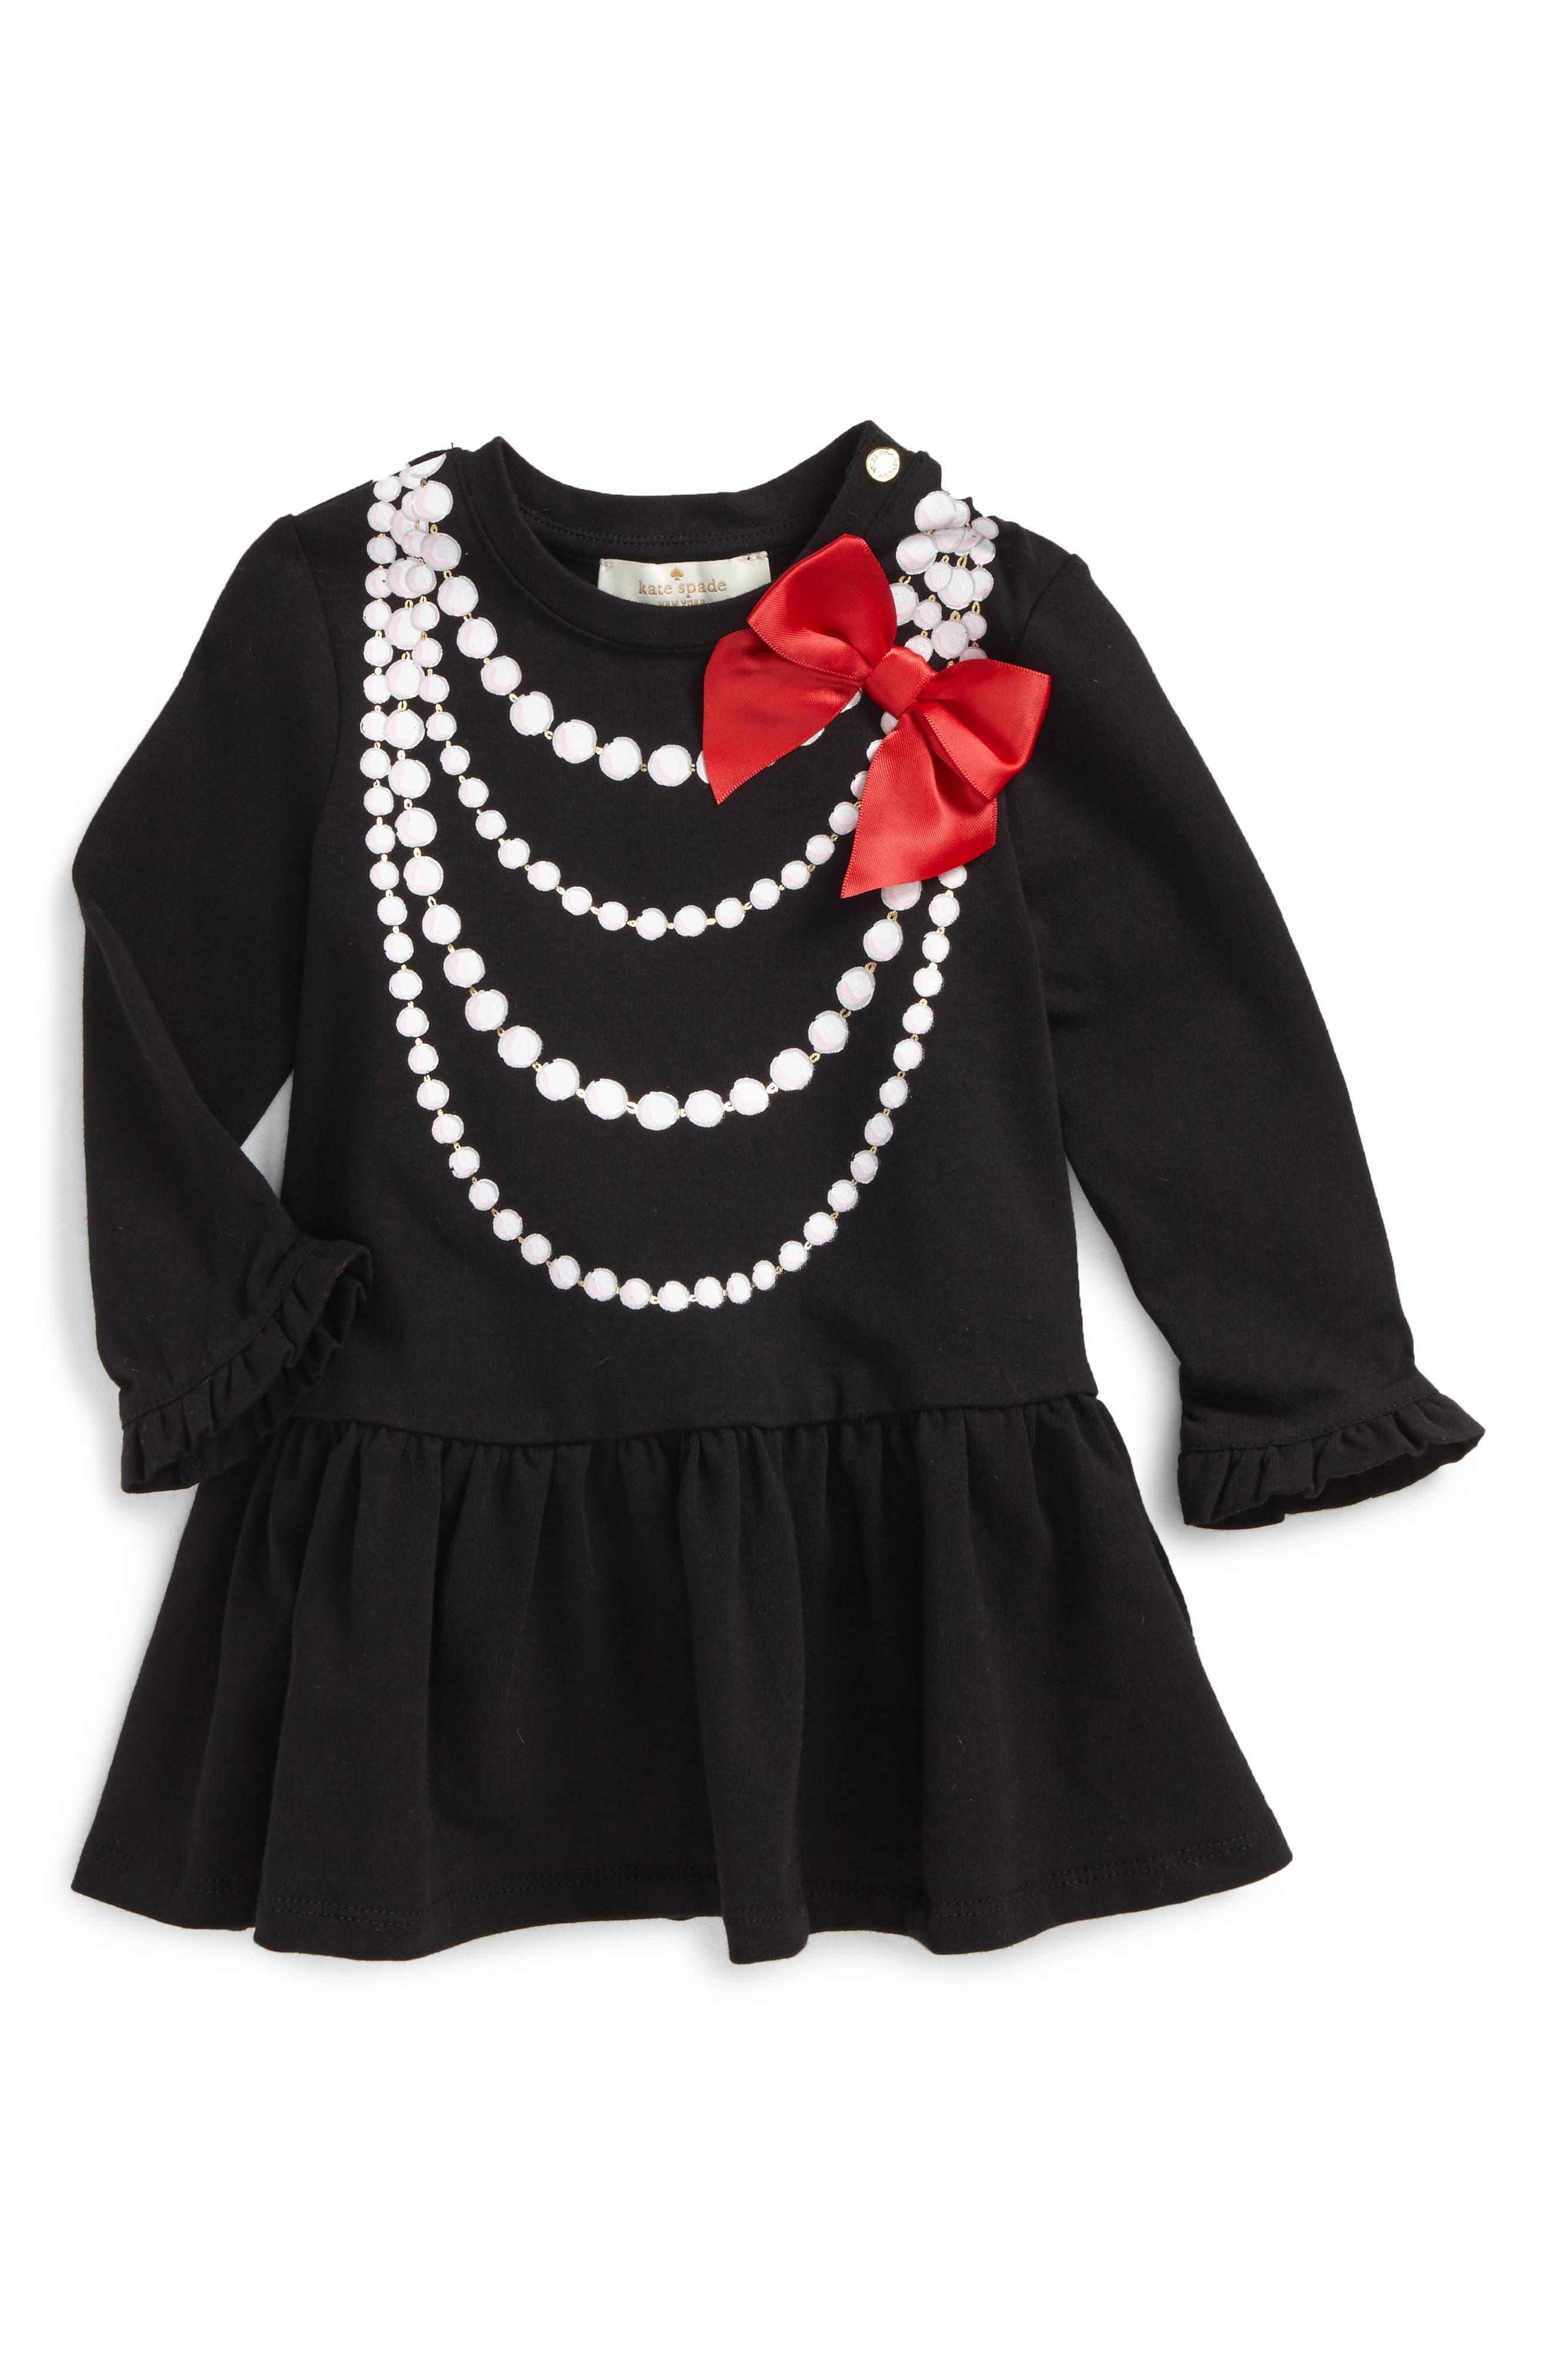 kate spade new york trompe l'oiel dress (Baby Girls)